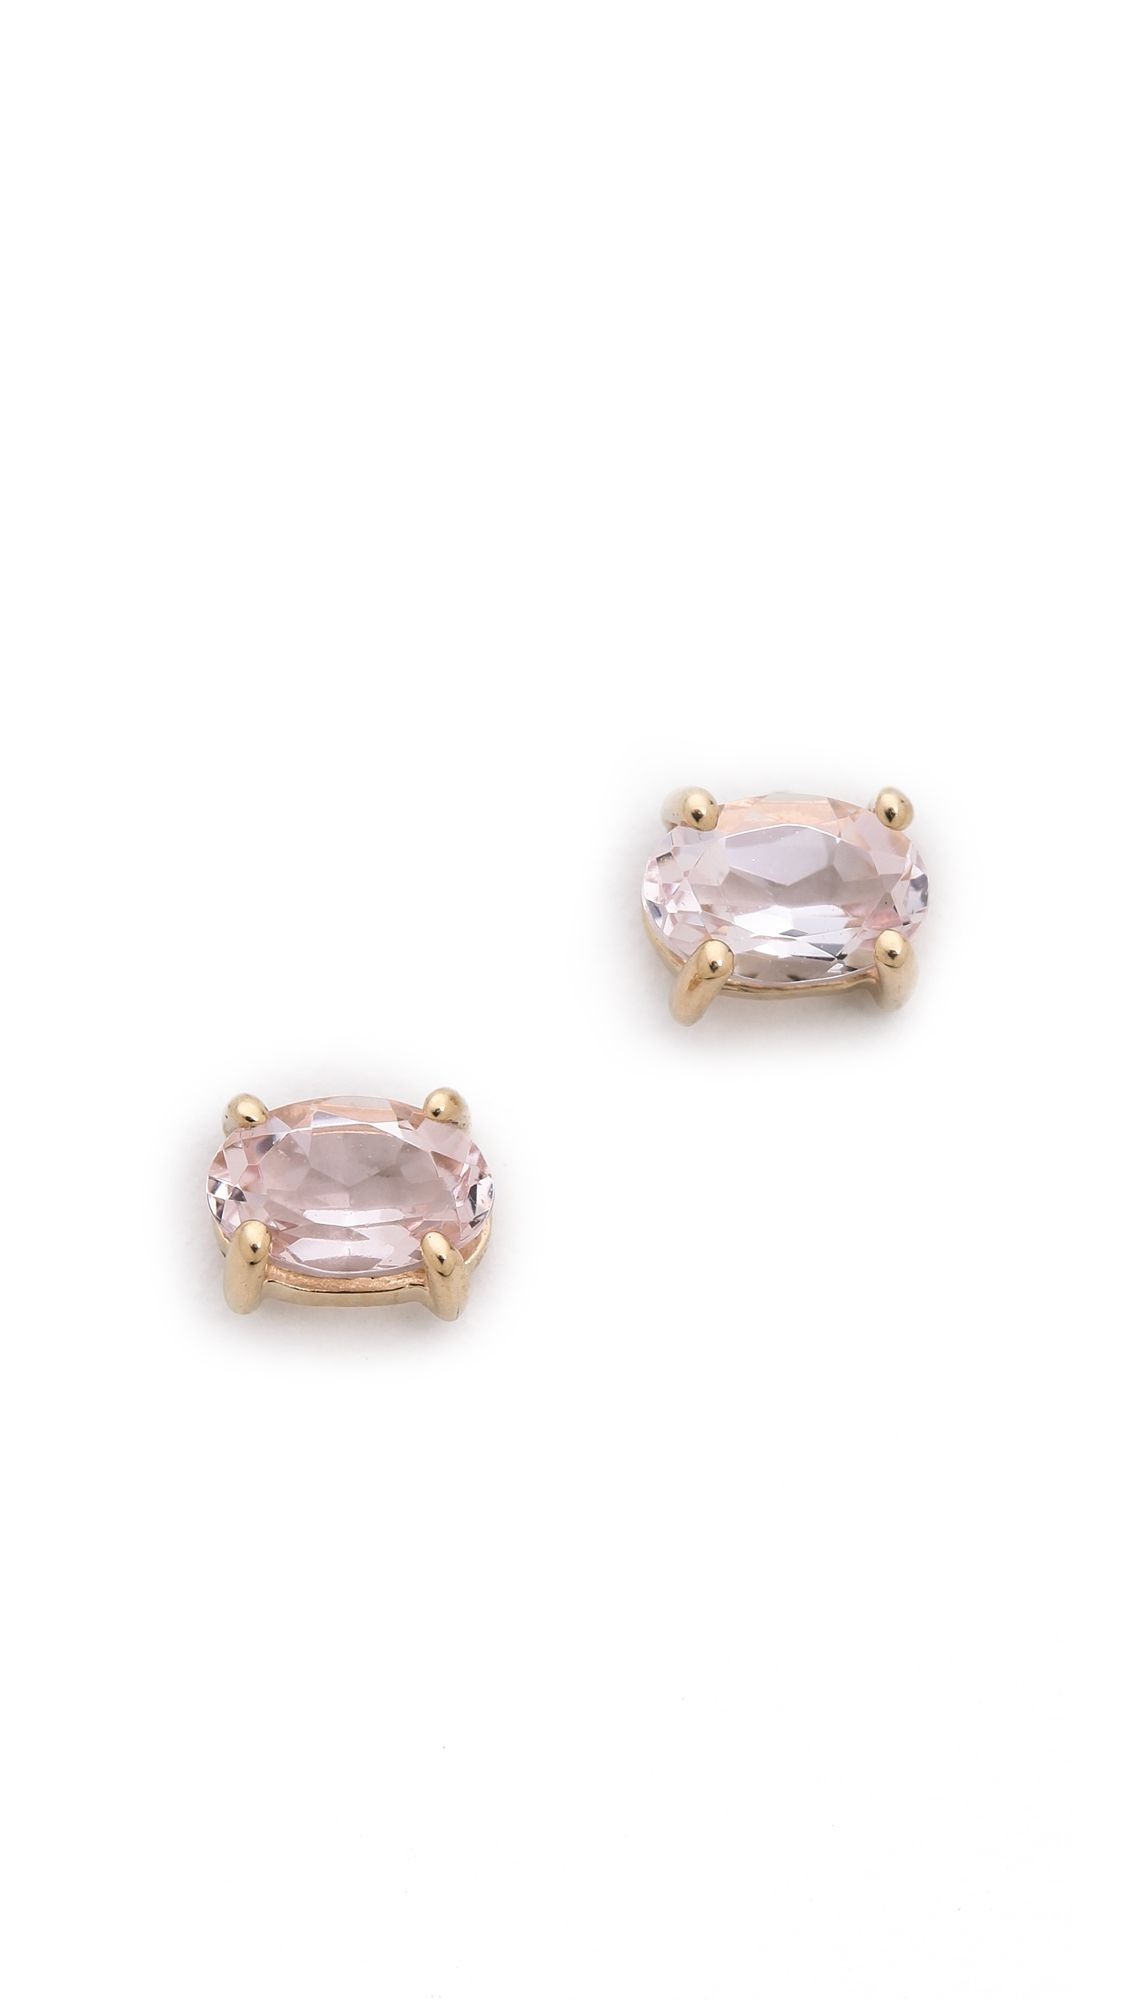 earrin scroll scrollwork rose wexford earri stud work vintage earrings gold morganite